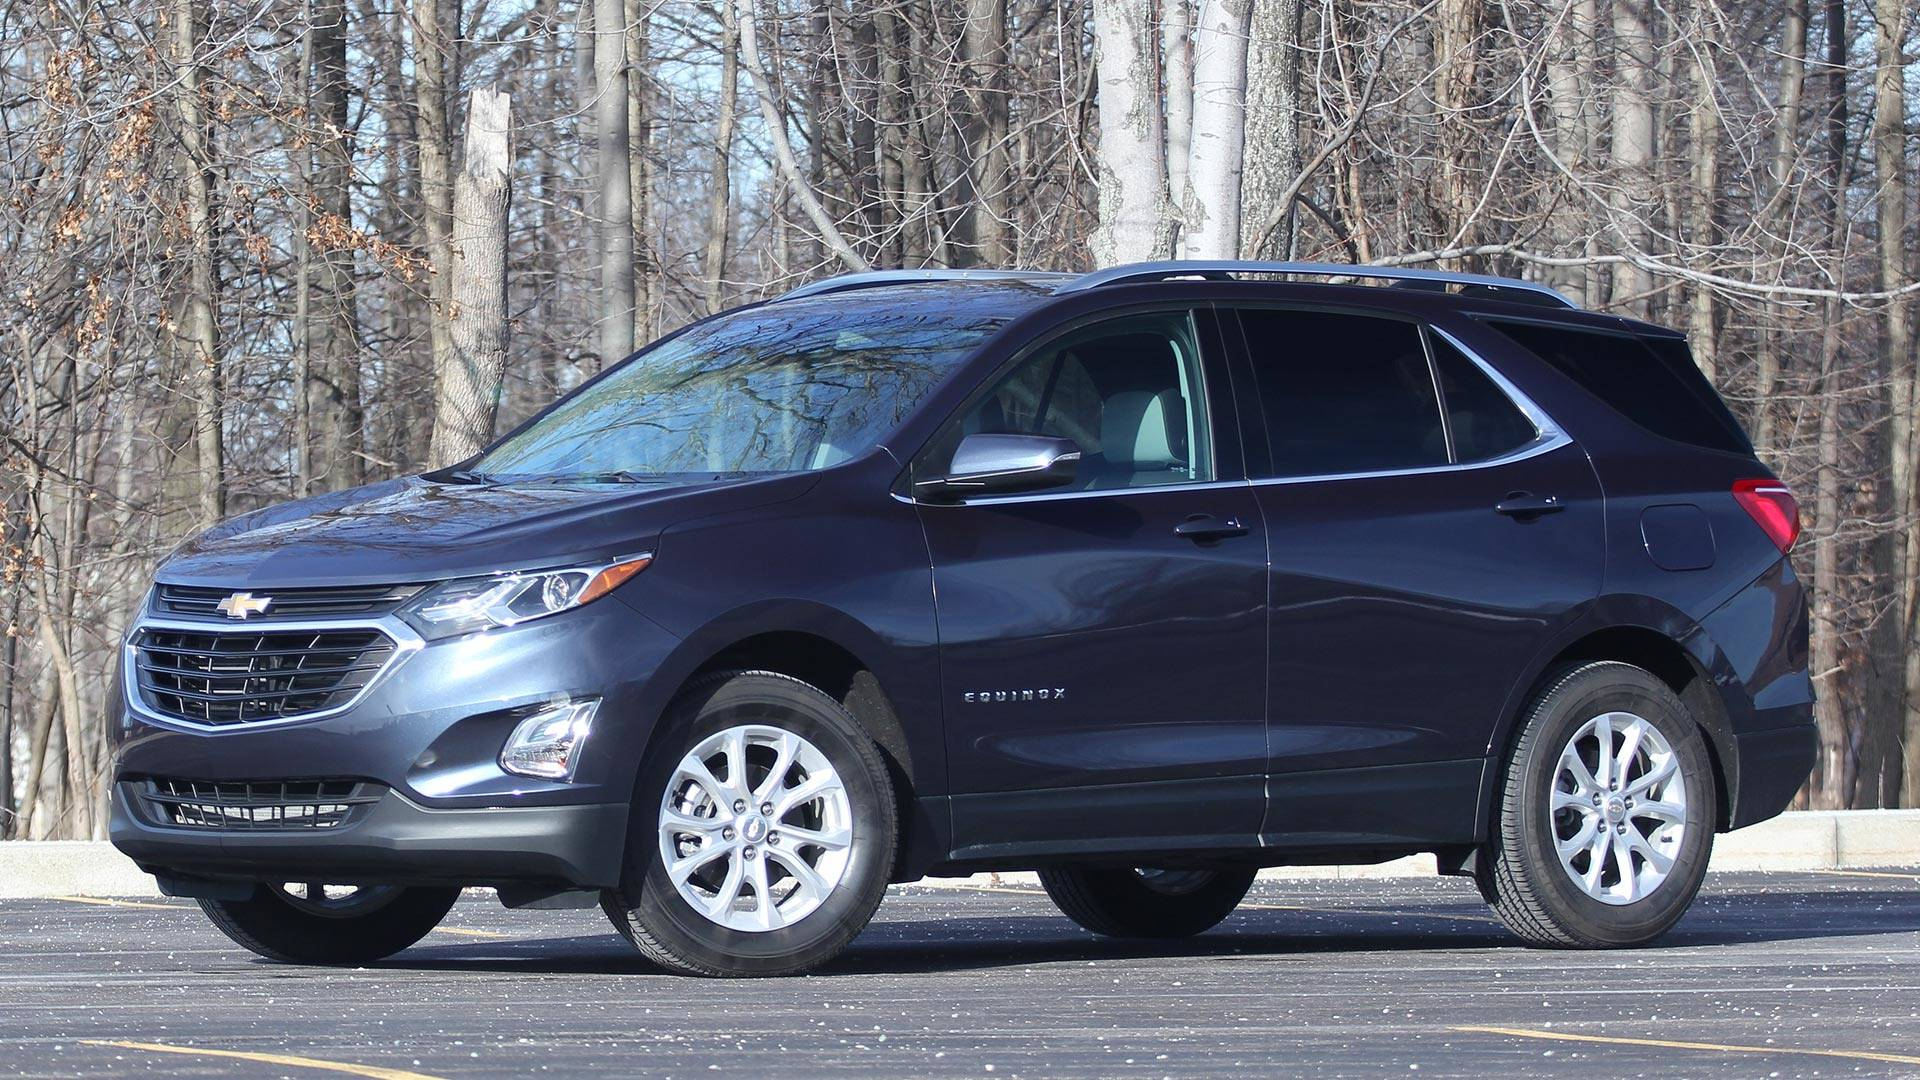 Chevy Equinox Deals 2018 Lamoureph Blog